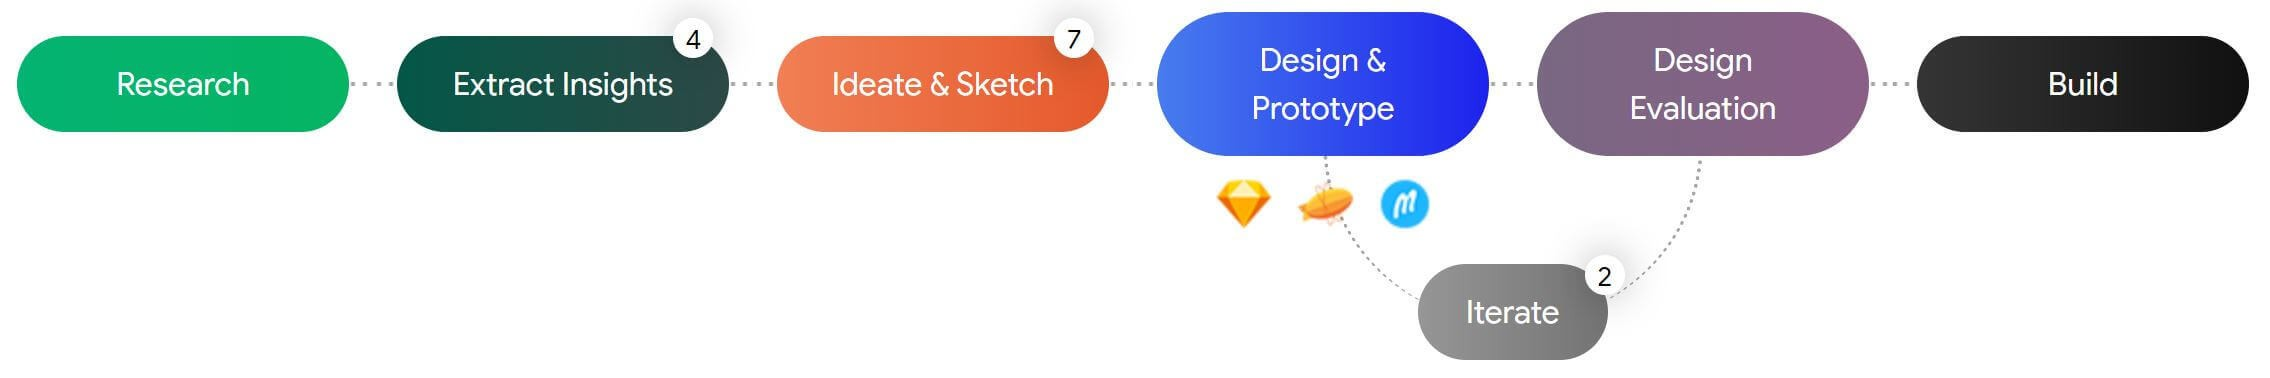 sierra-green design process